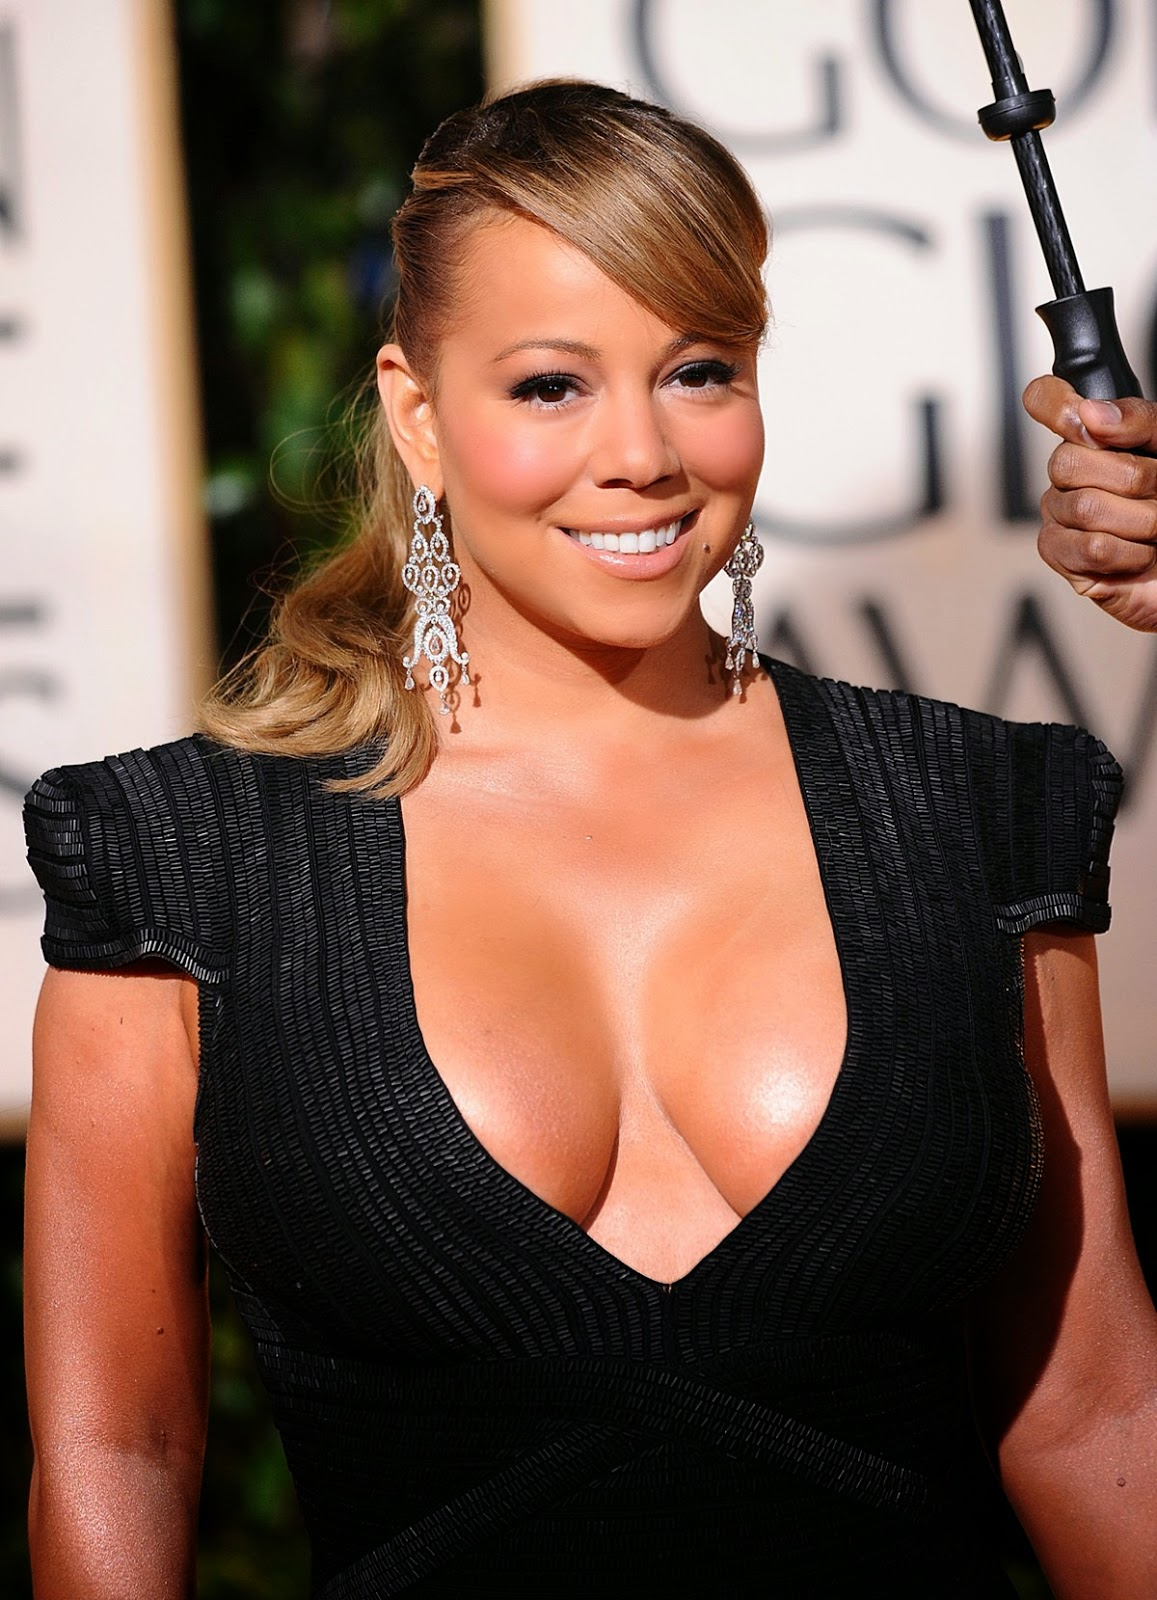 Mariah Carey to Release Beyonce-Style Digital Album